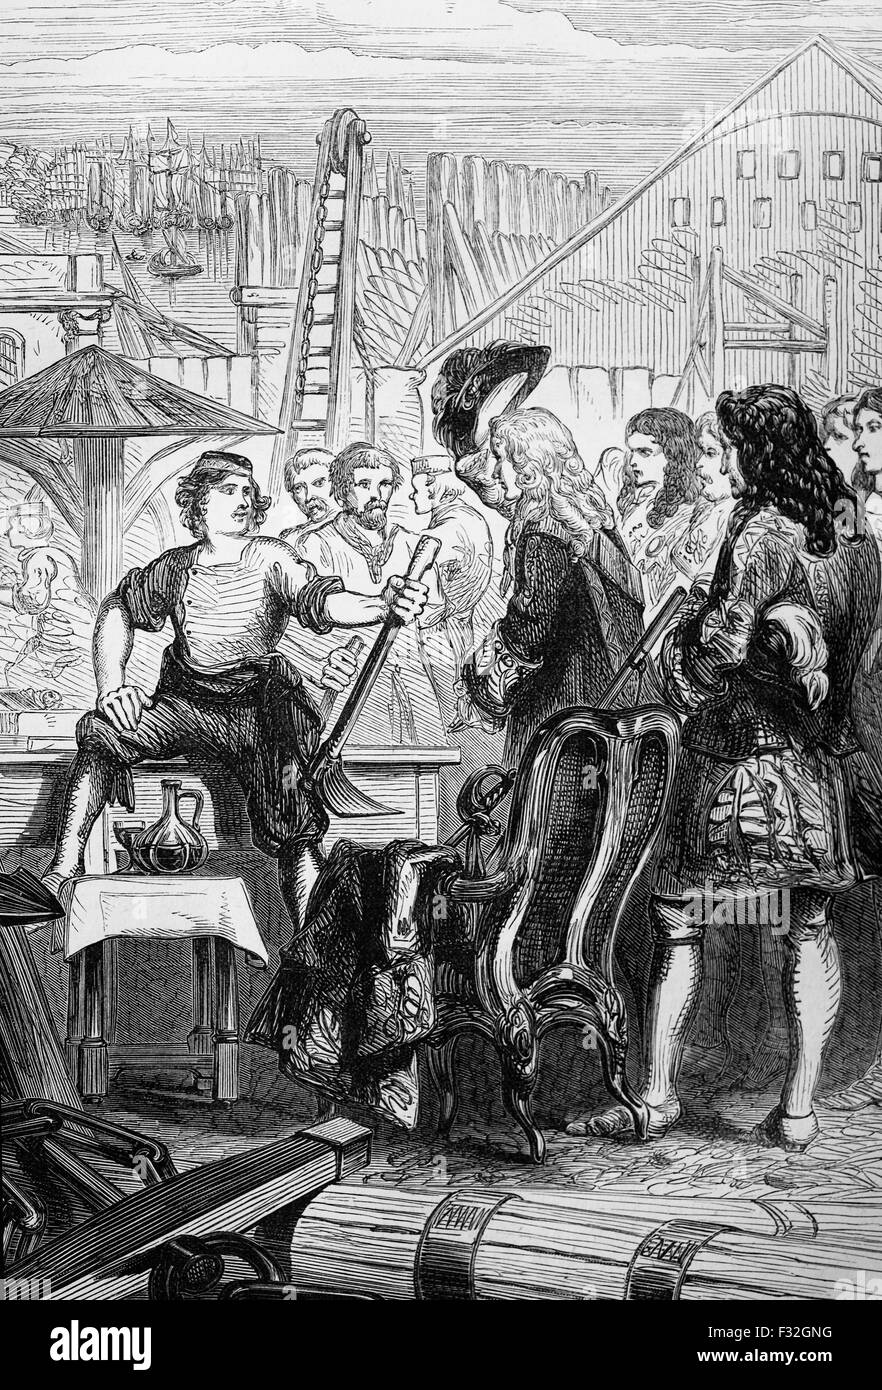 Peter the Great in a British Shipyard in January 1698. He had arrived in England from Holland, determined to study - Stock Image